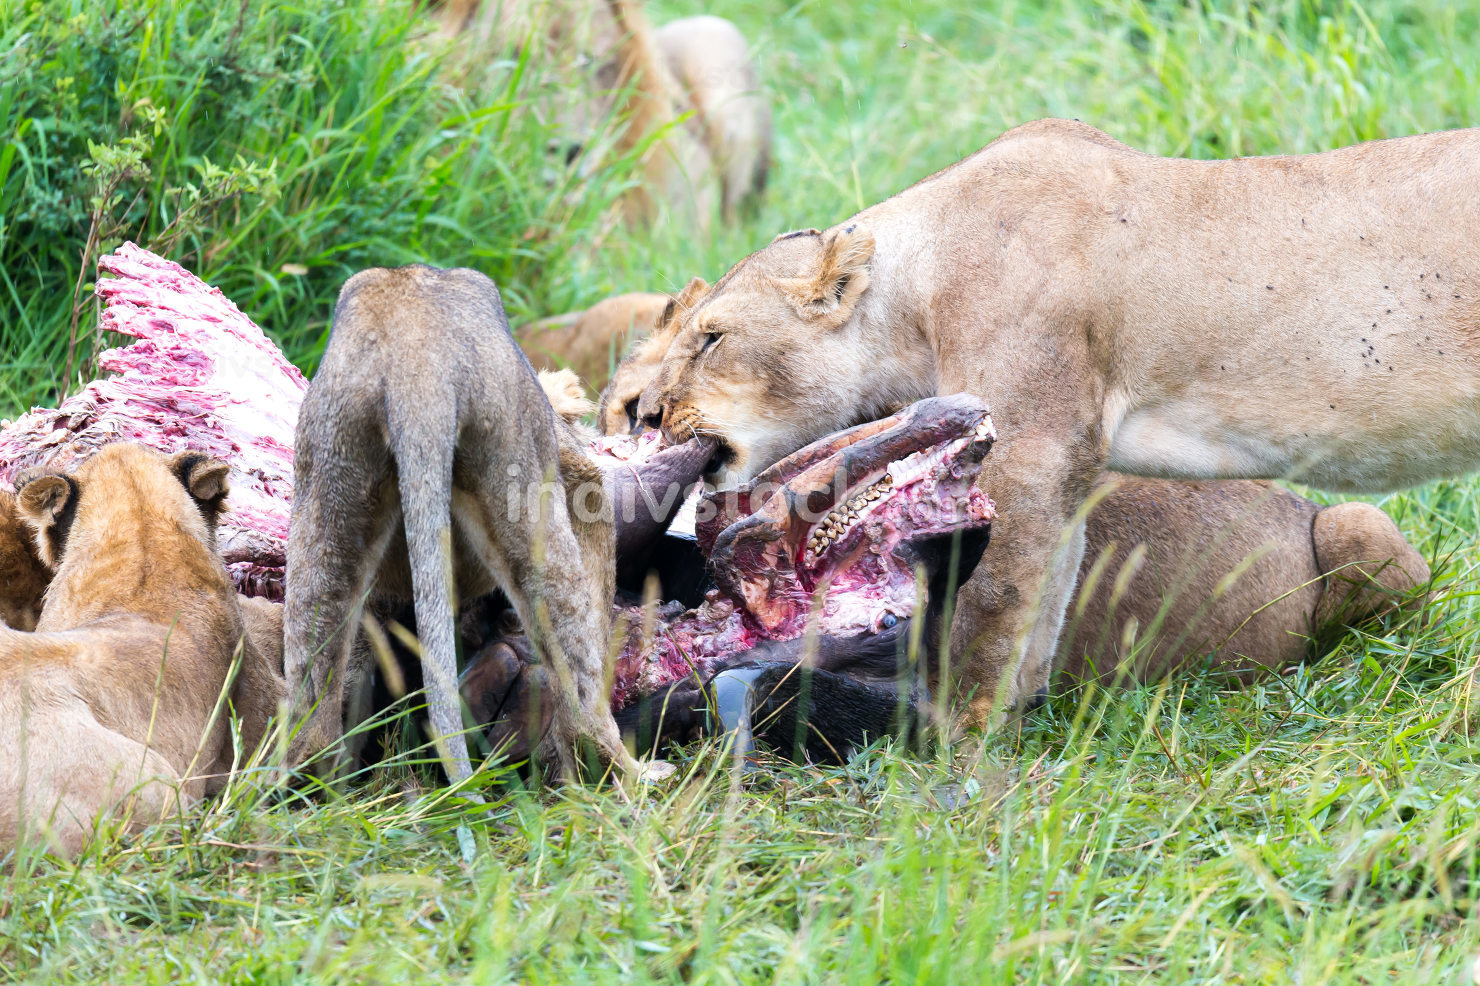 A lion family is eating a buffalo between tall grass